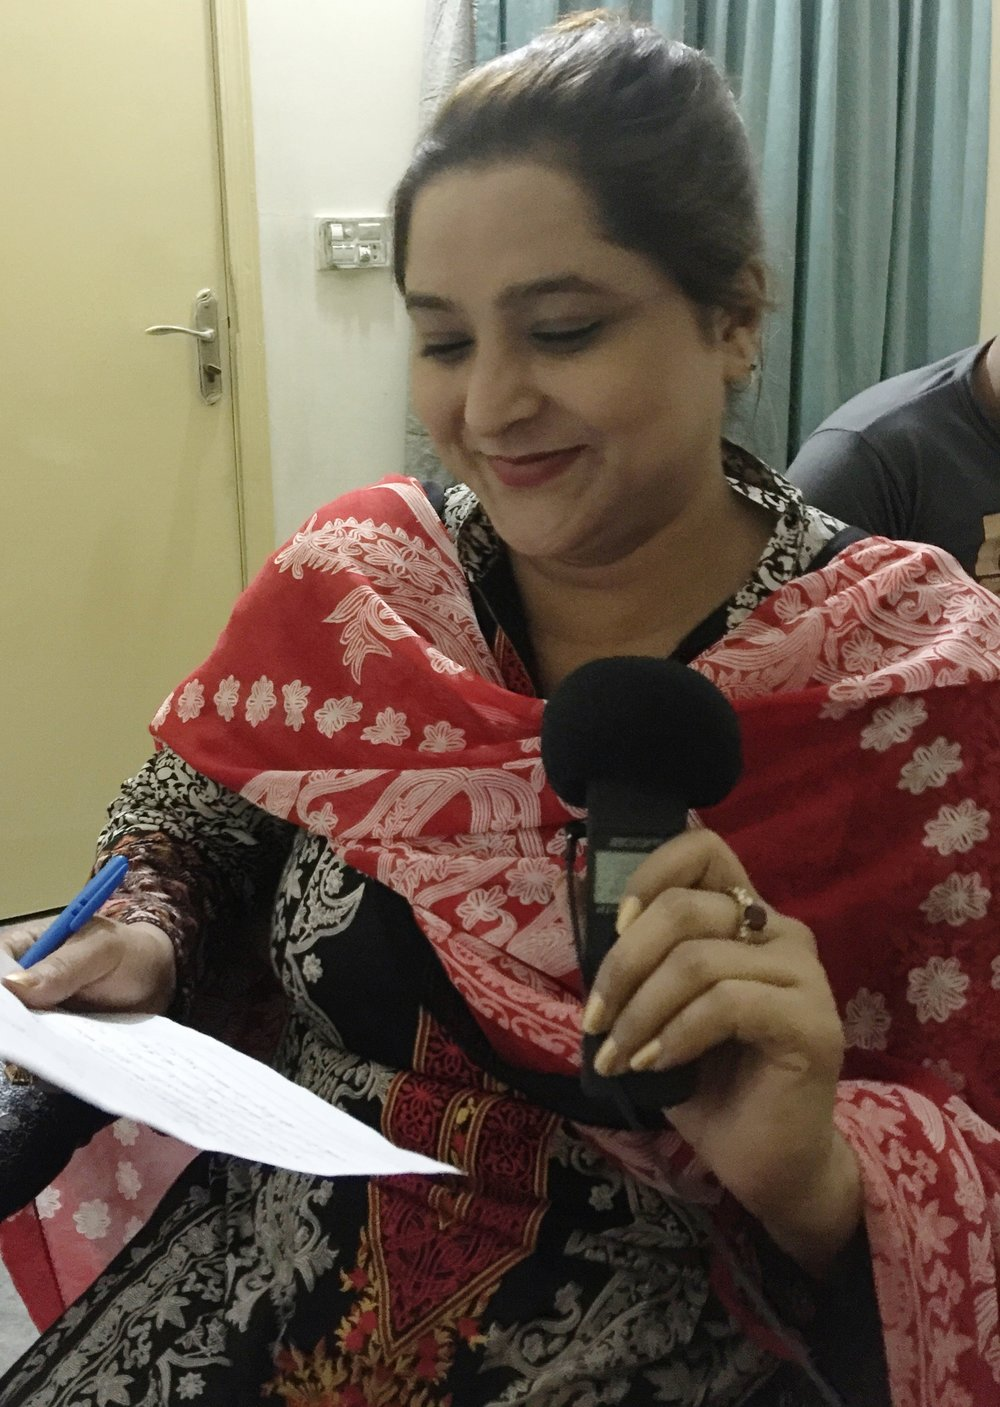 Urdu narration by Farzana.